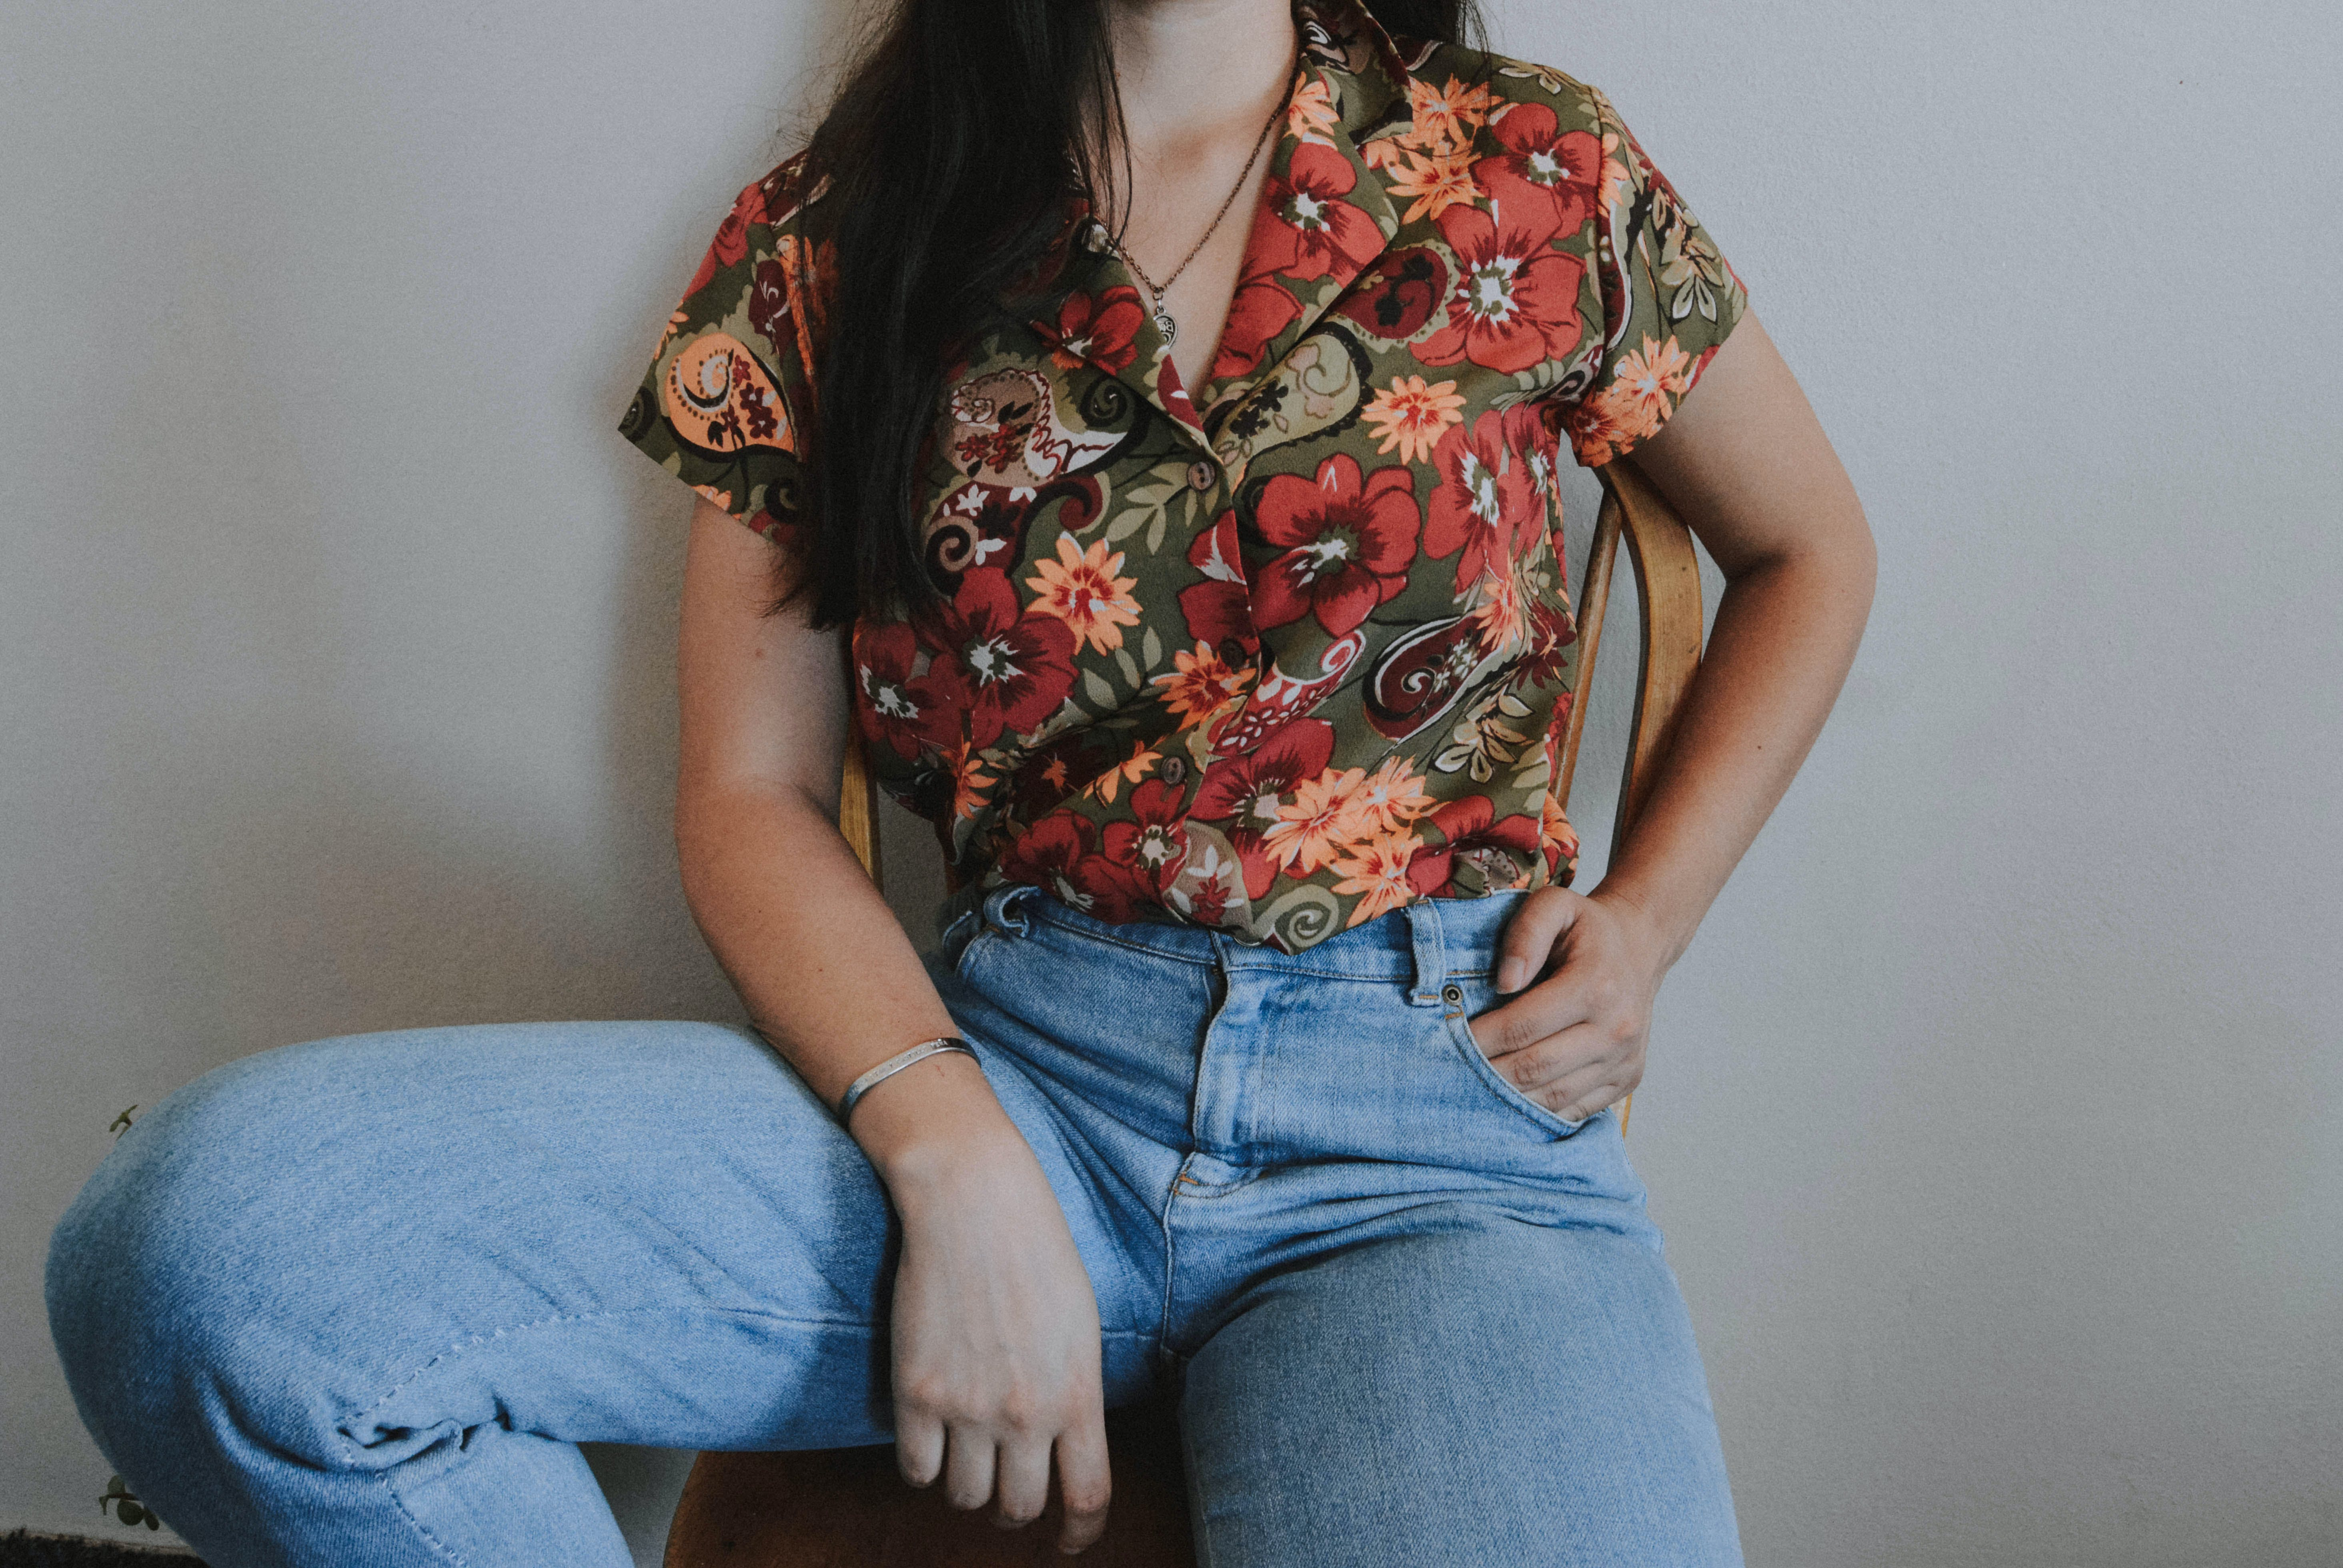 Woman Wearing Multicolored Floral Button-up Shirt and Blue Denim Jeans While Leaning on Wall